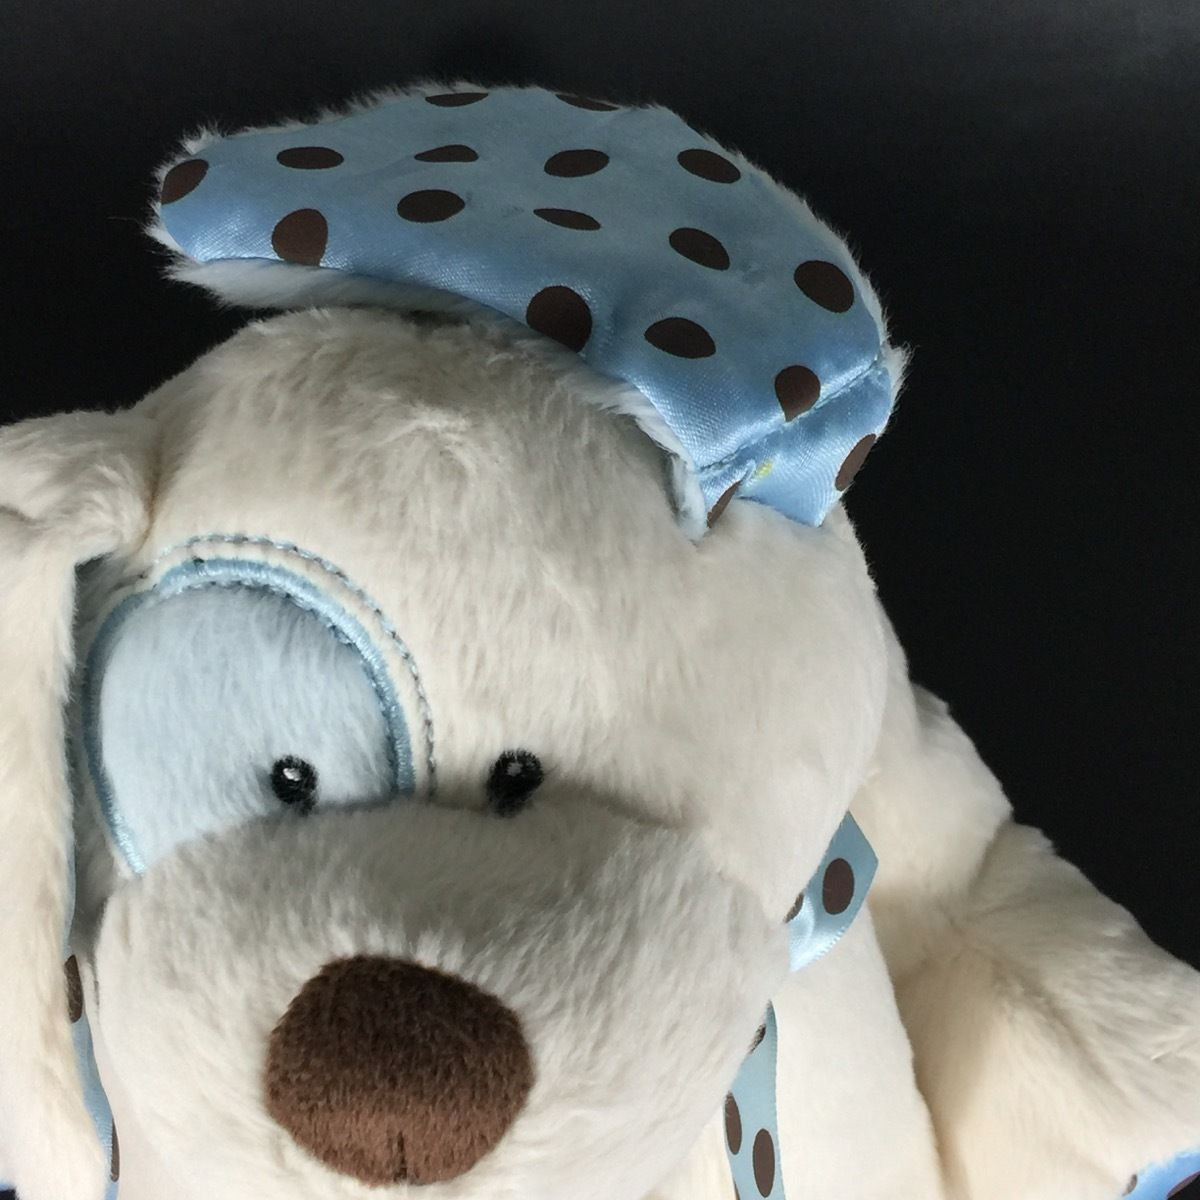 Baby GANZ Stuffed Animal Dog Chocolate Drops Puppy Rattle Blue Plush New Toy image 6